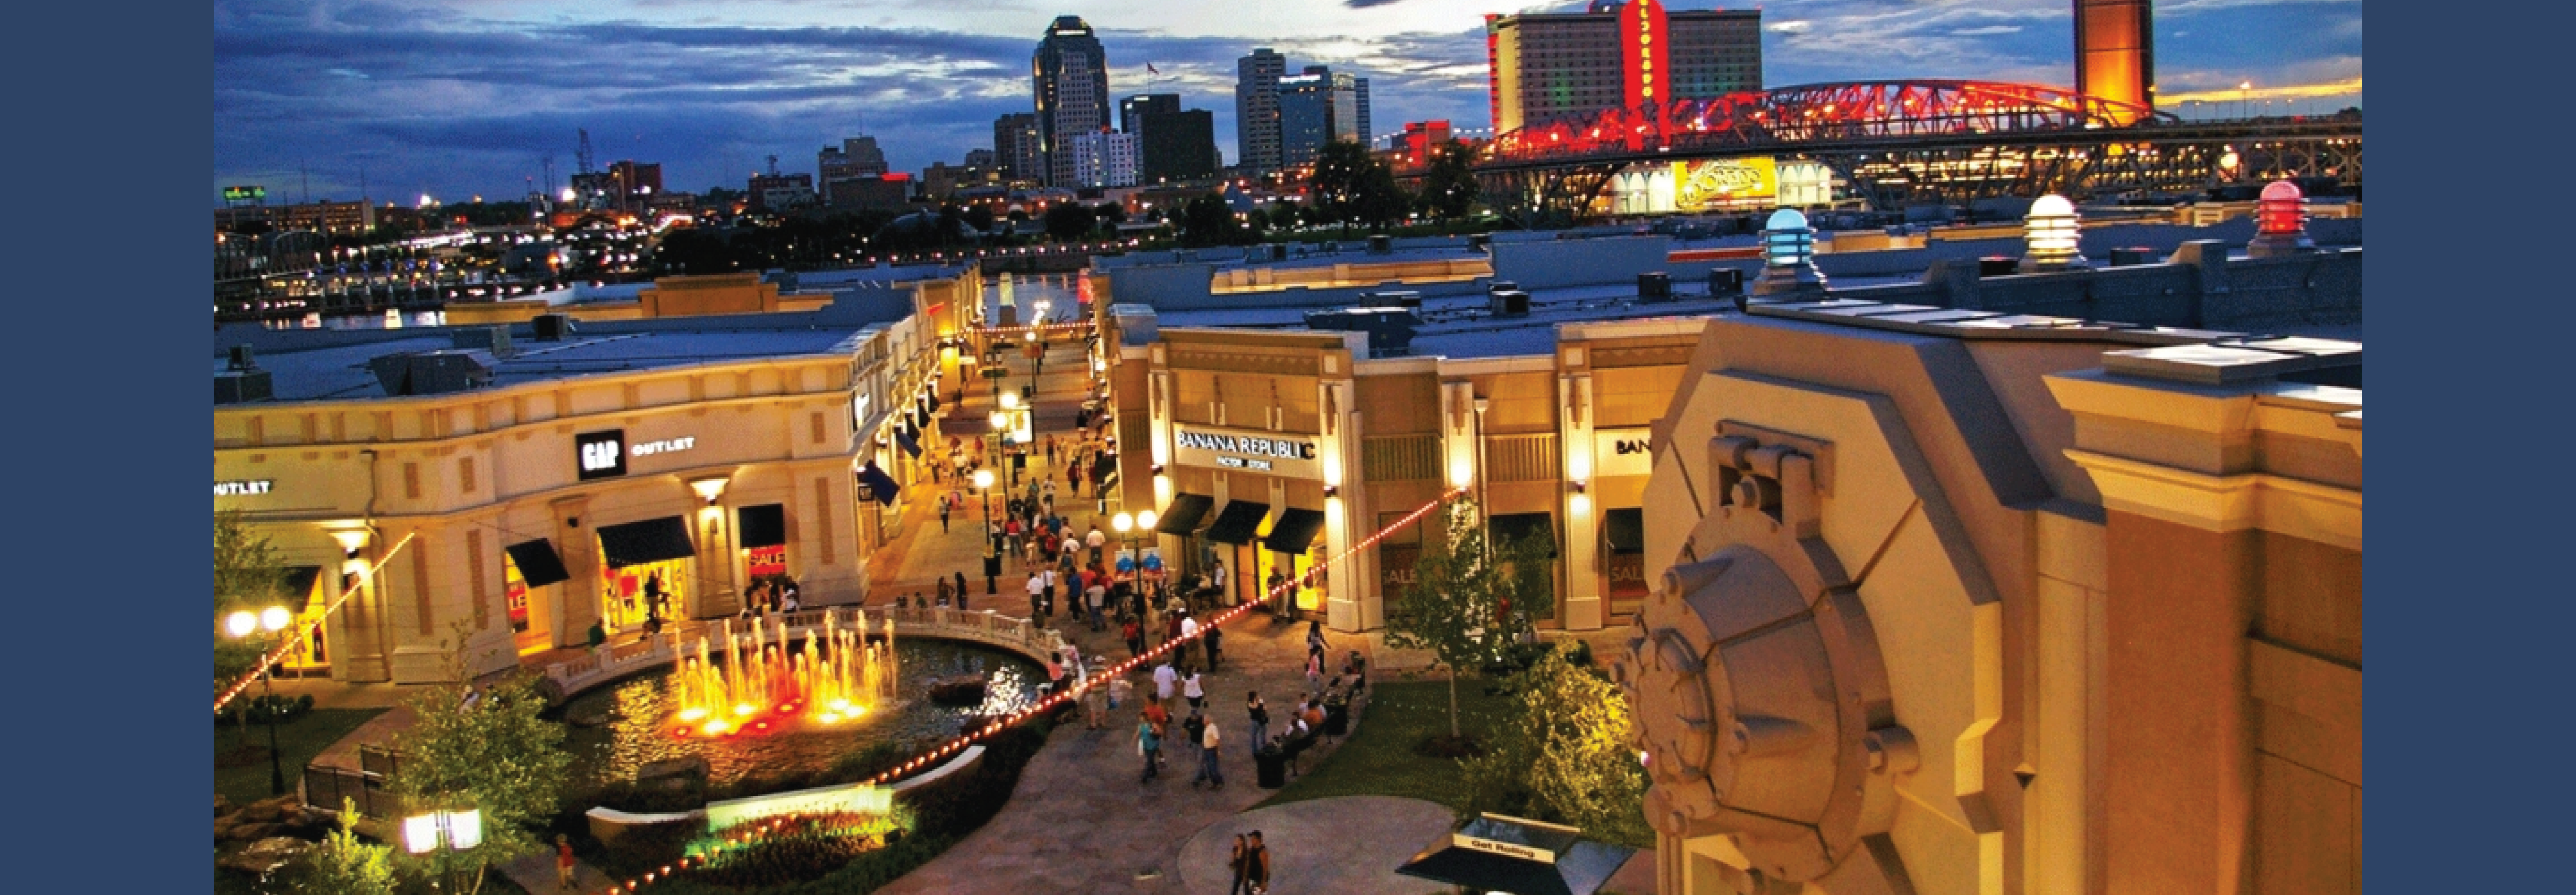 City of Bossier, LA shopping center at night. The City uses GIS for Utilities.